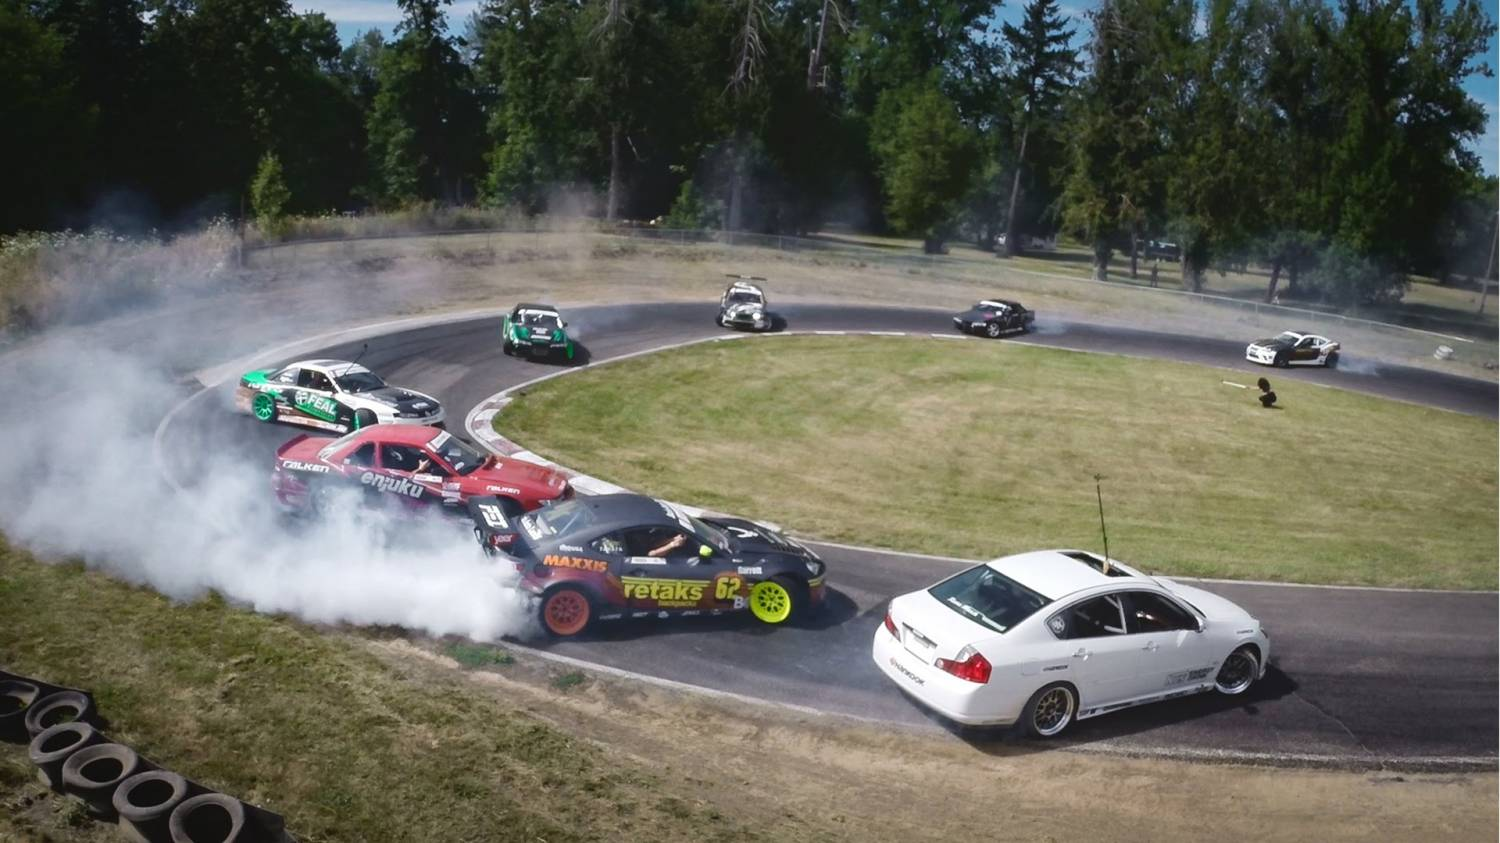 Музыка и видеоролик из рекламы GoPro - Twelve Car Tandem Drift